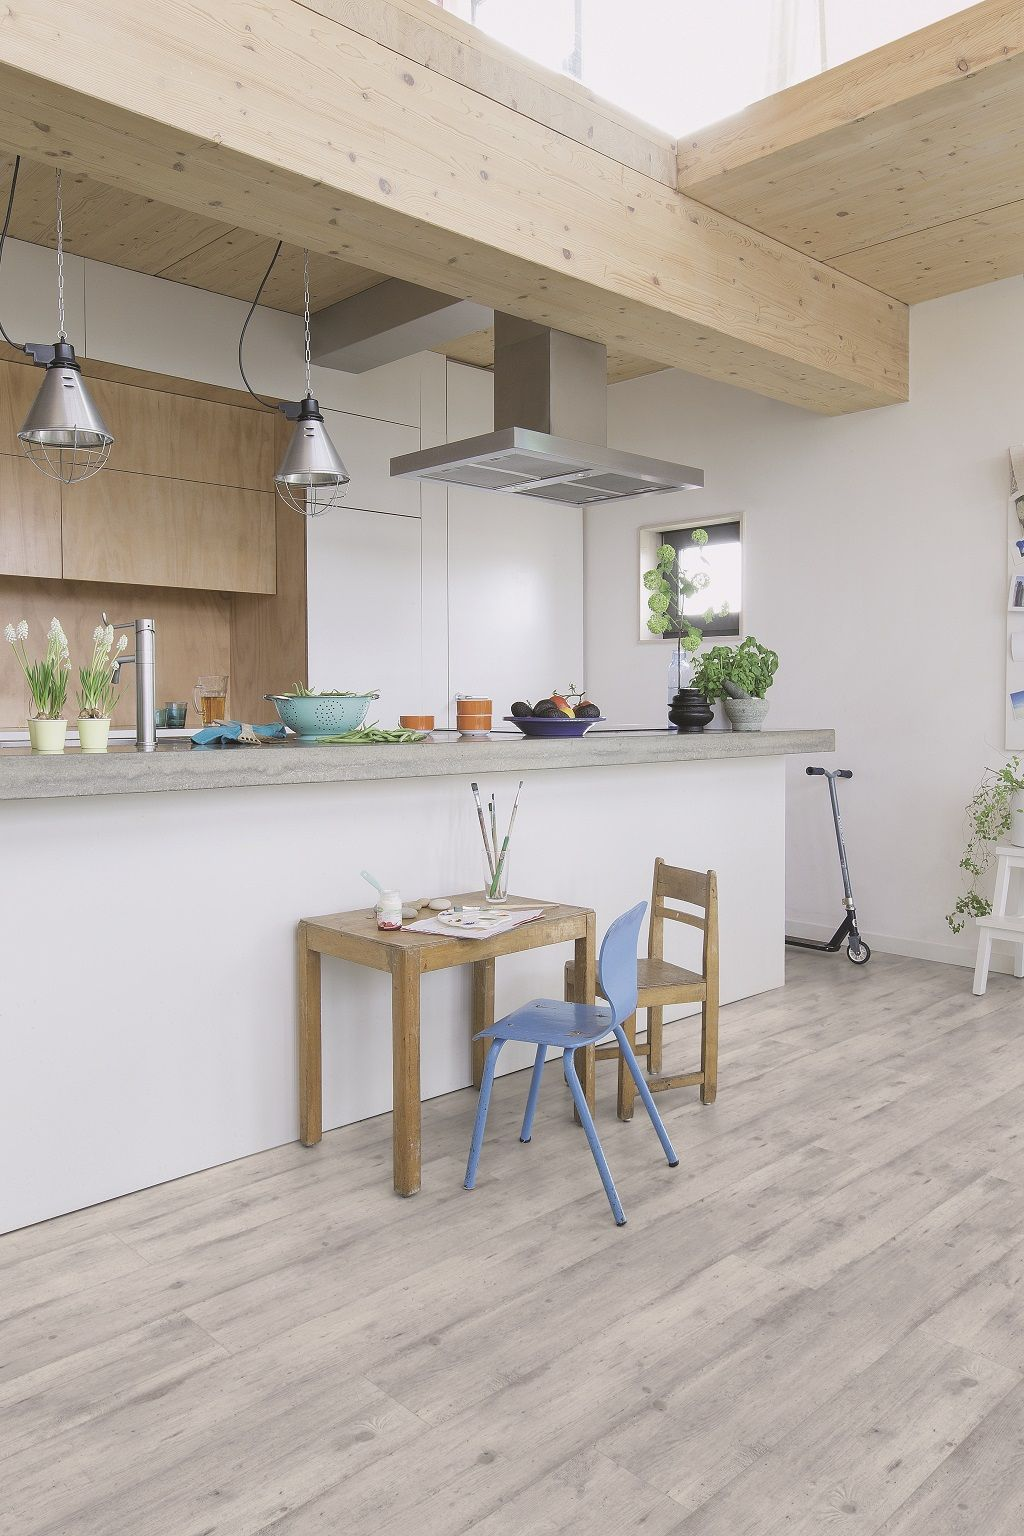 How to choose the perfect kitchen flooring | Concrete wood, Concrete ...